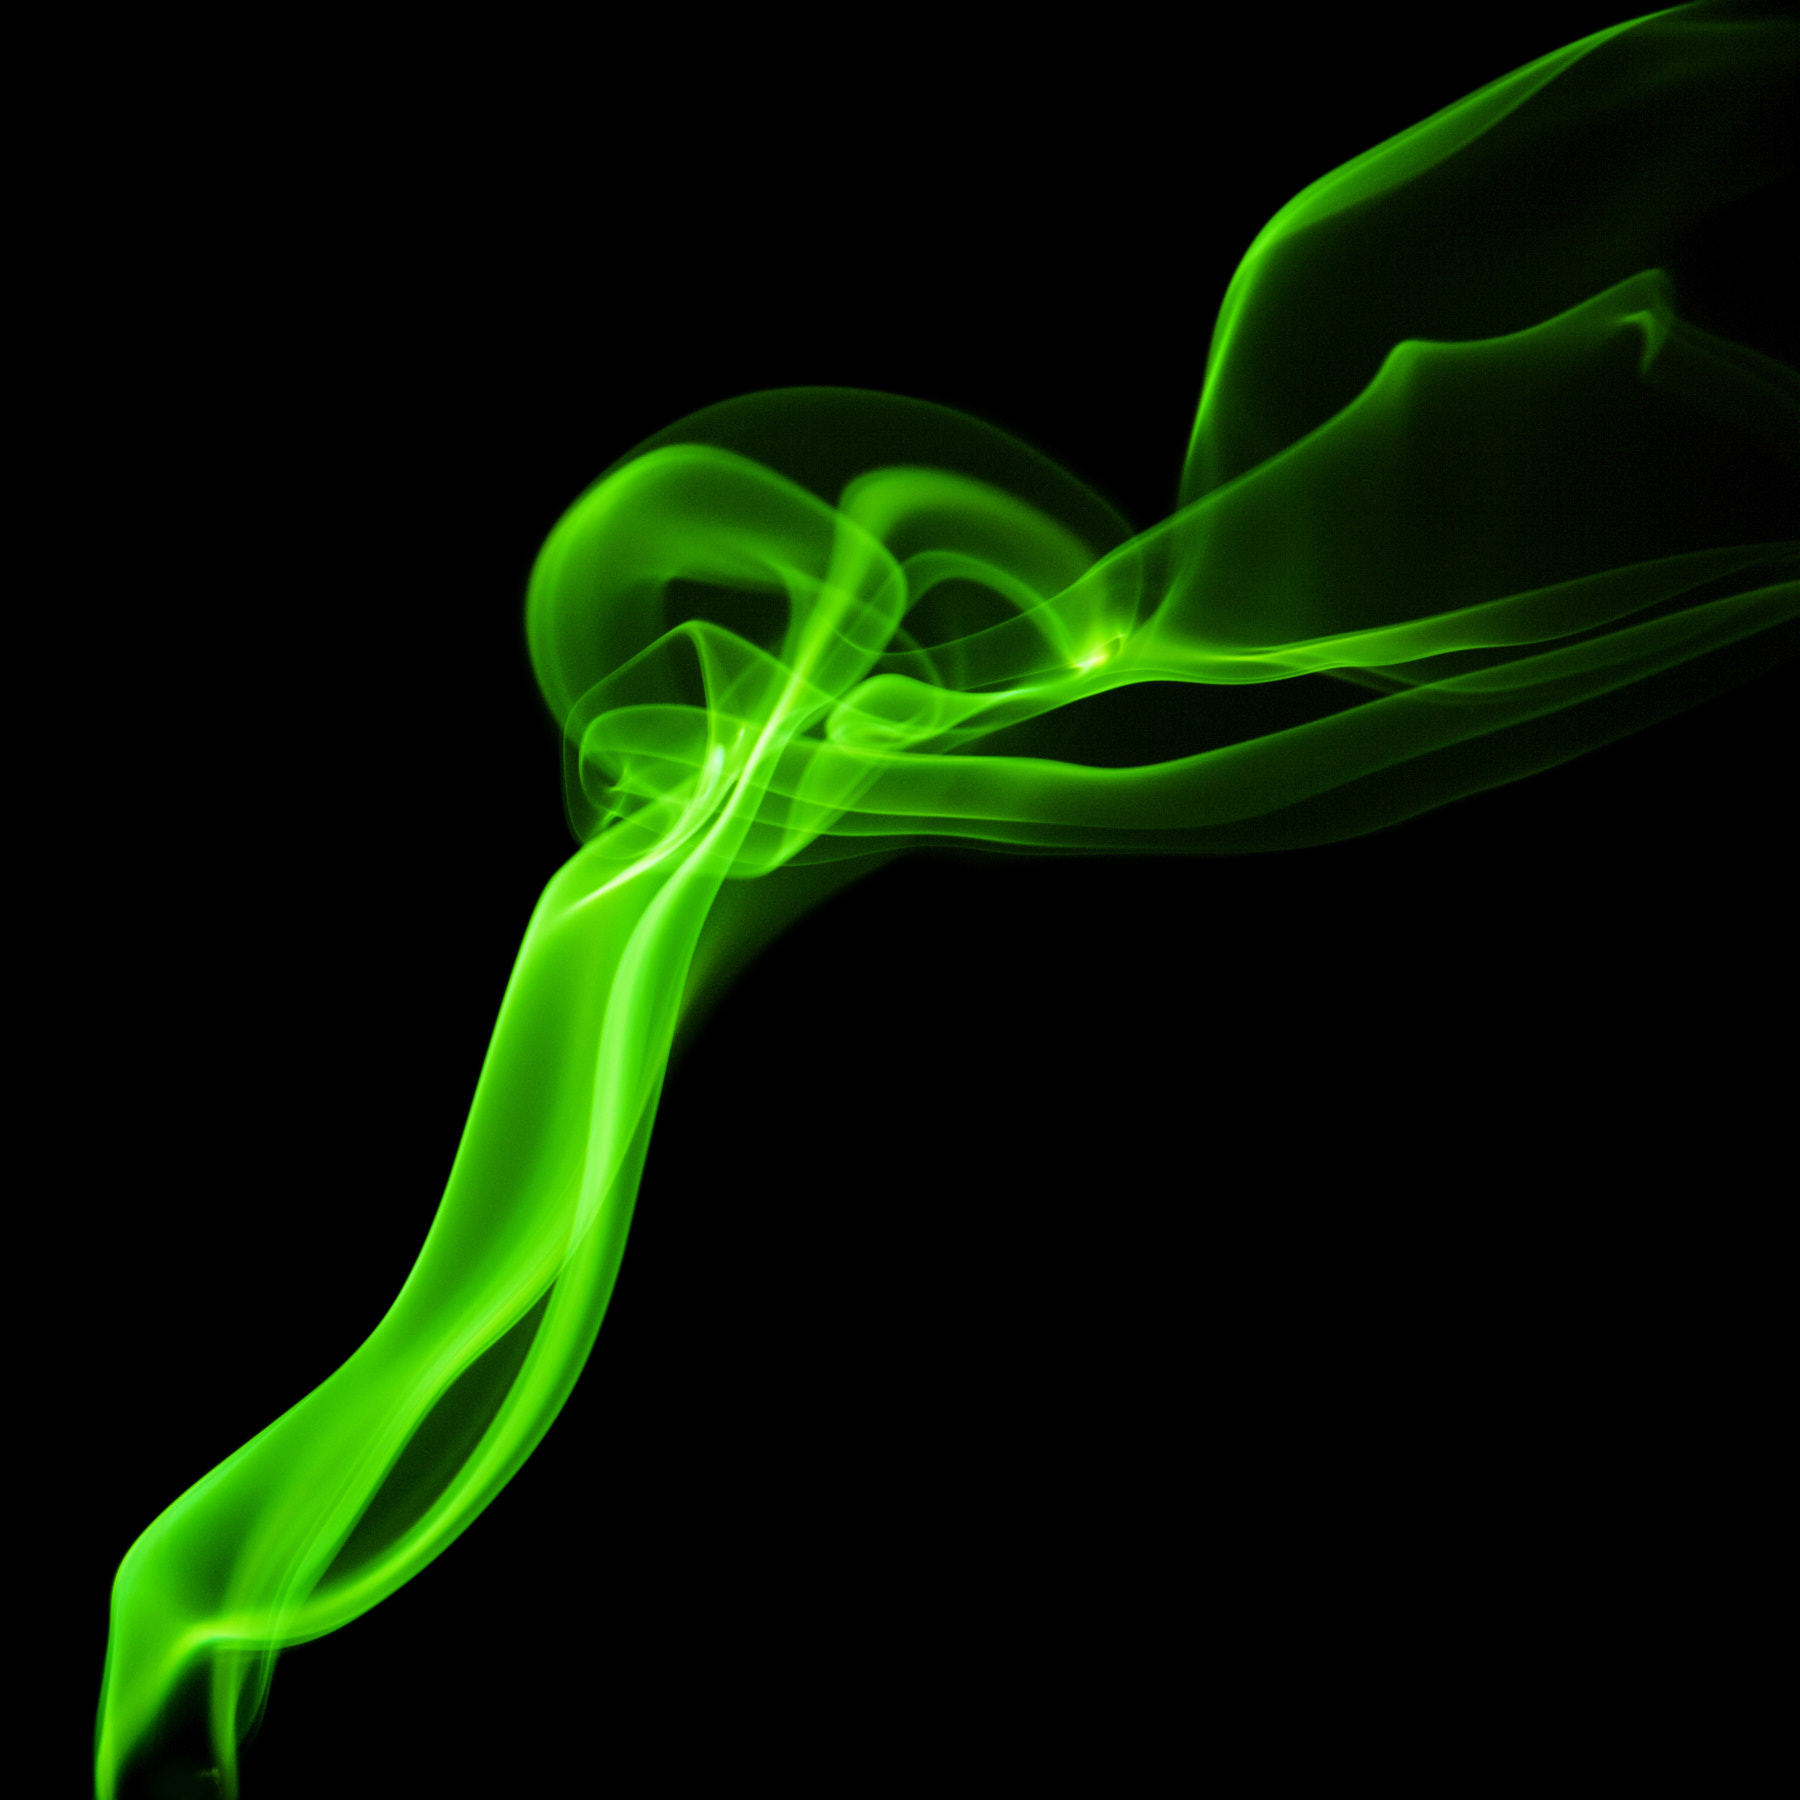 IMG_1241bl-green_CLEAN - Green and.jpg